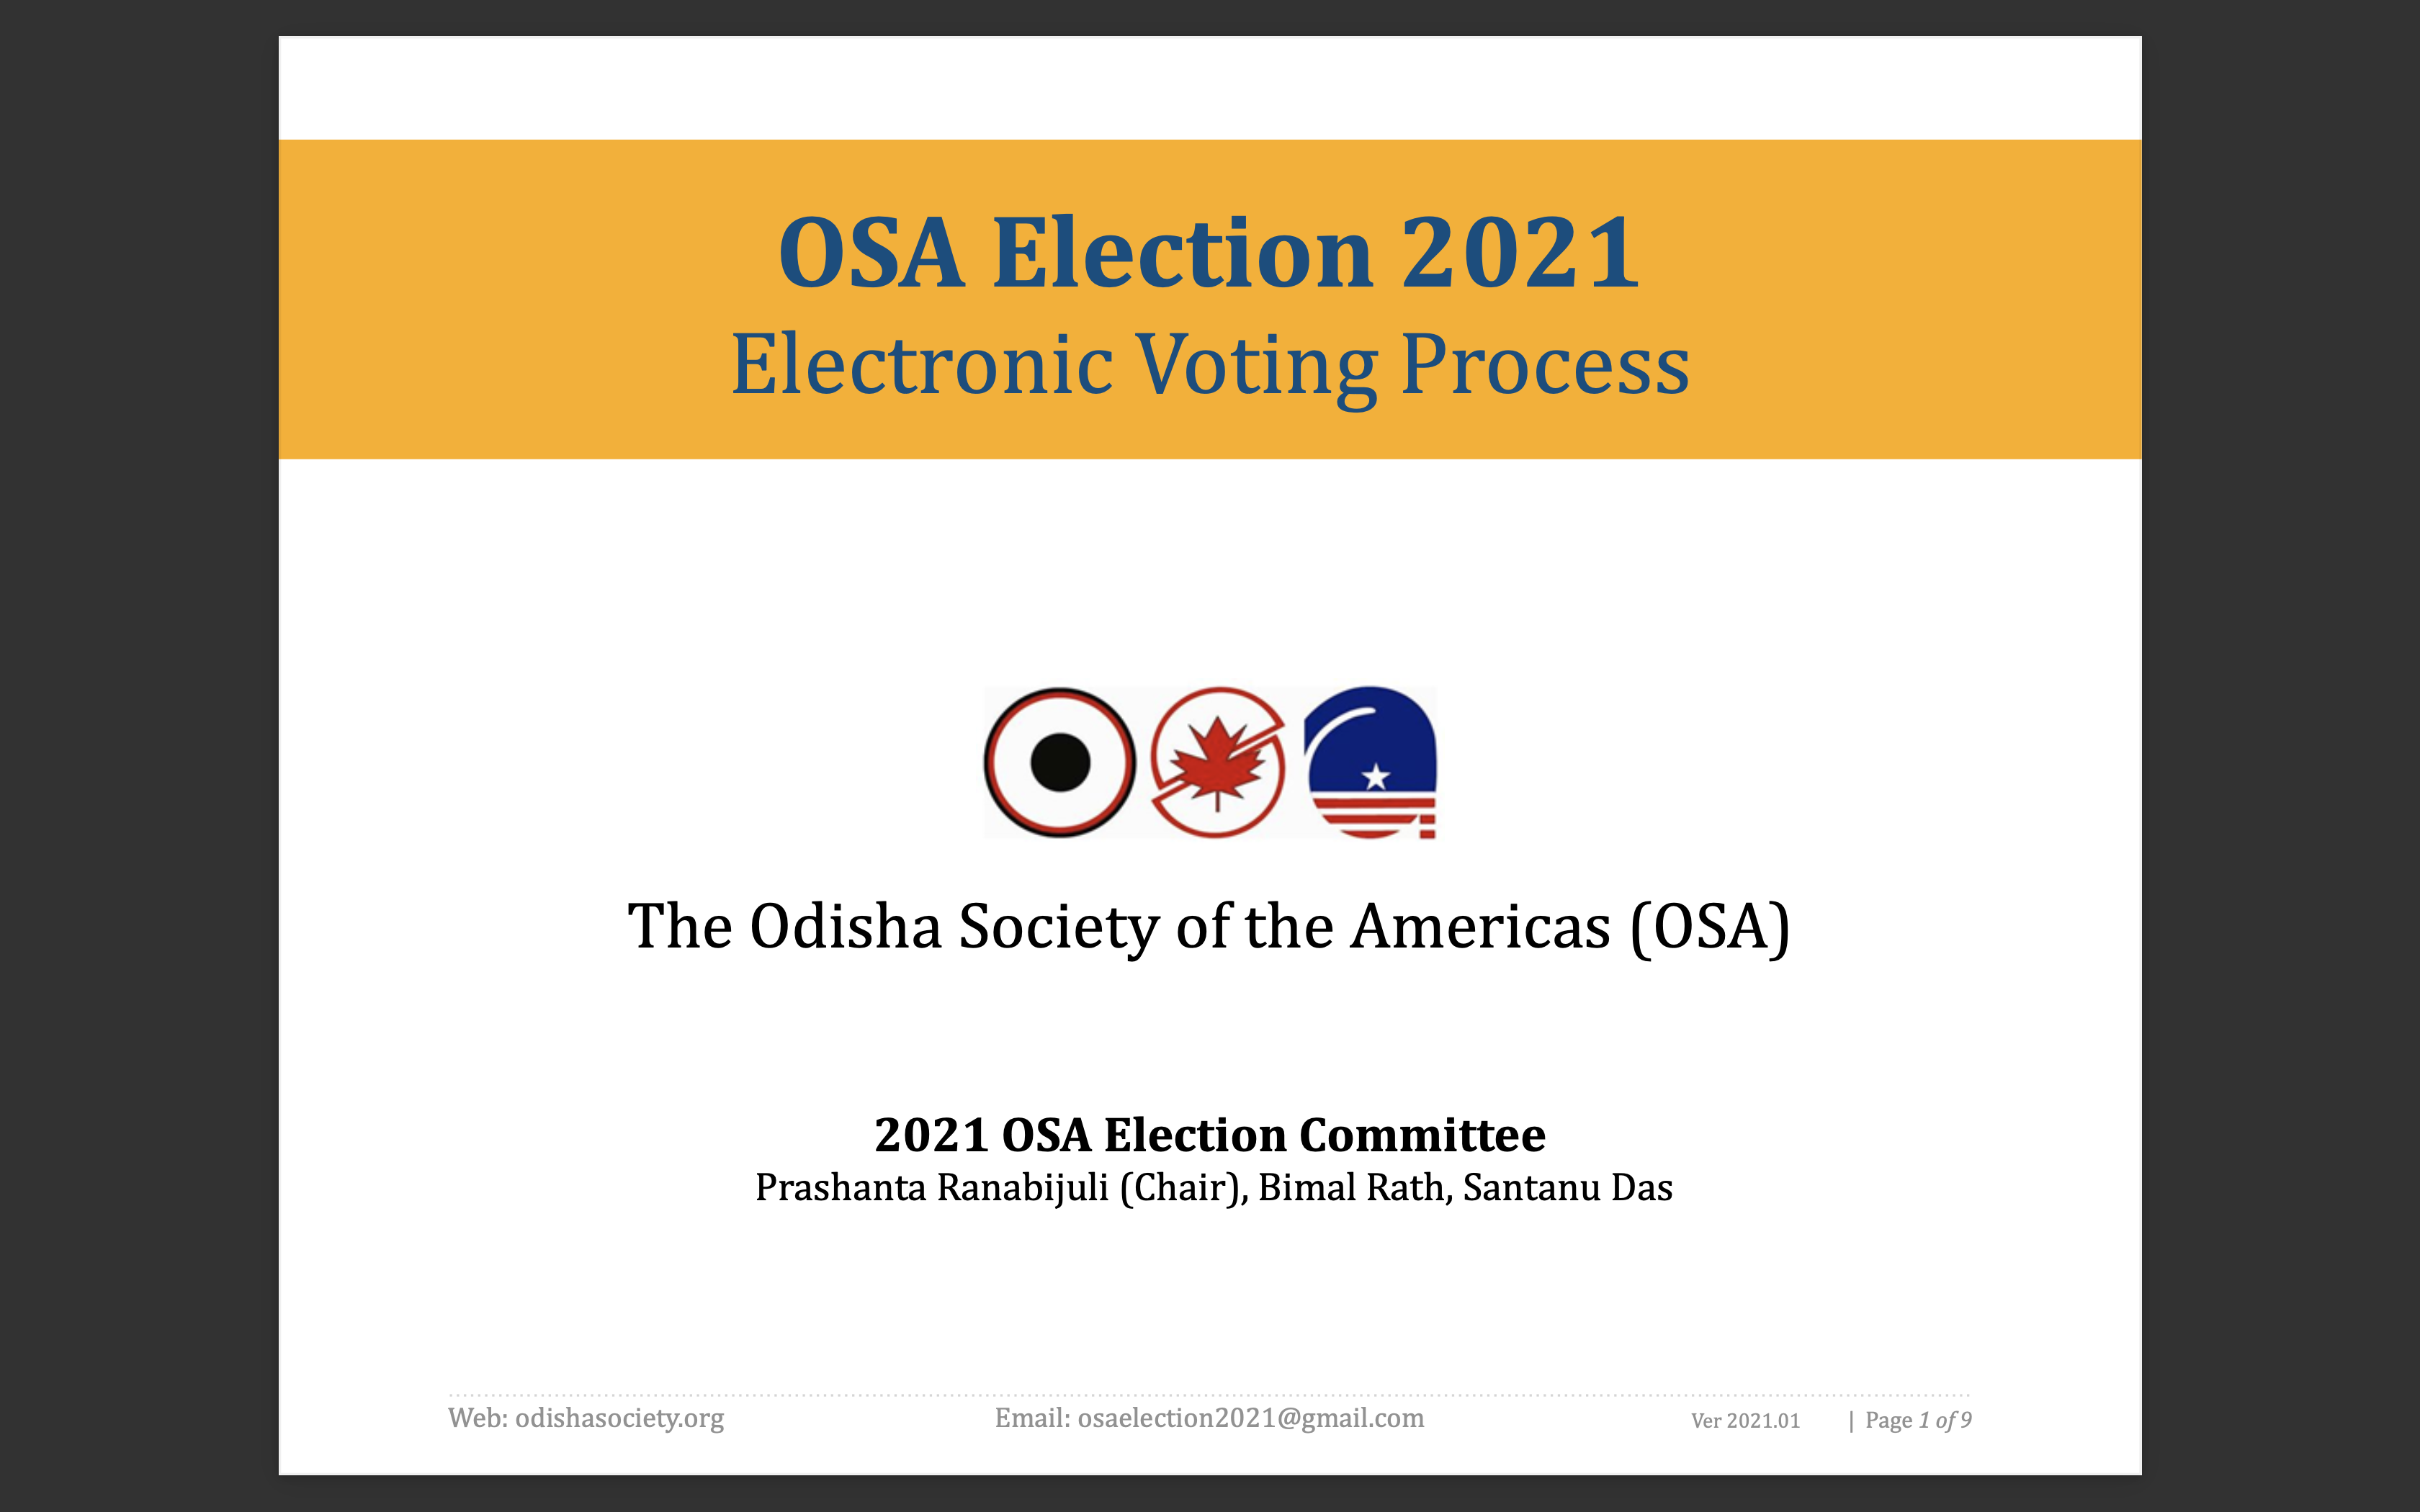 OSA Election 2021 - Voting instructions